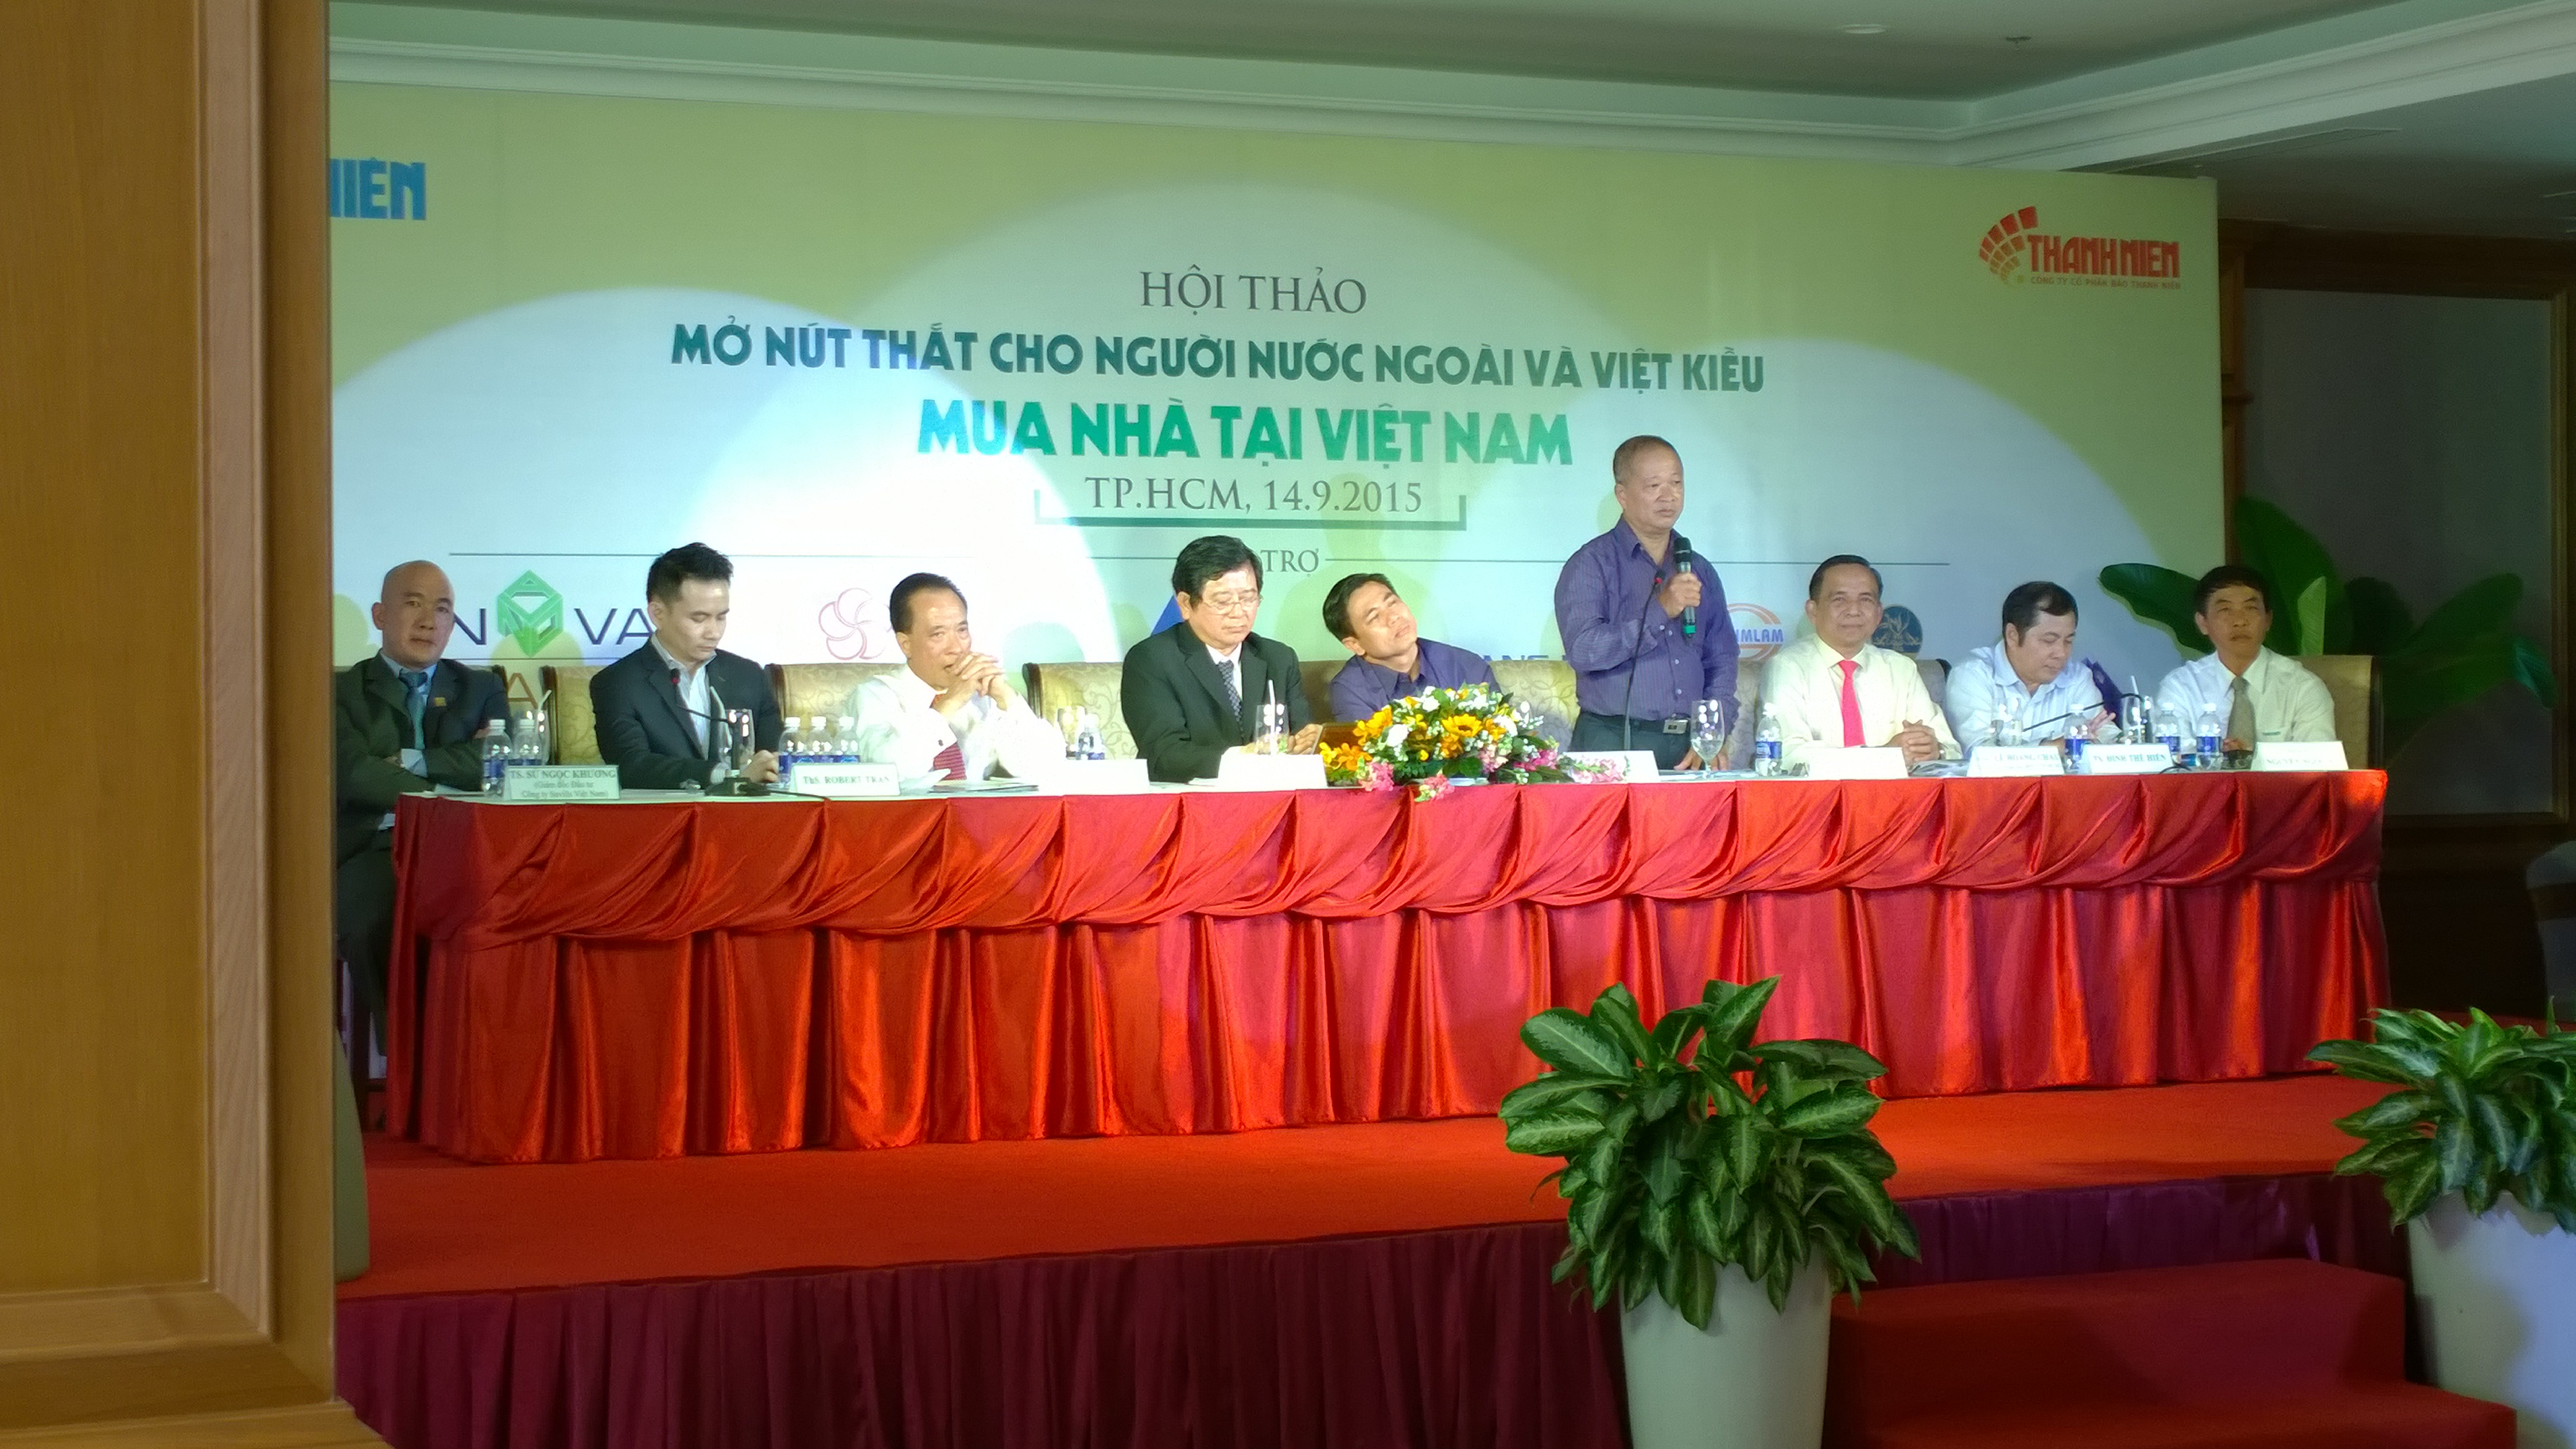 It's still hard for foreigners, Viet kieu to buy houses in Vietnam Business